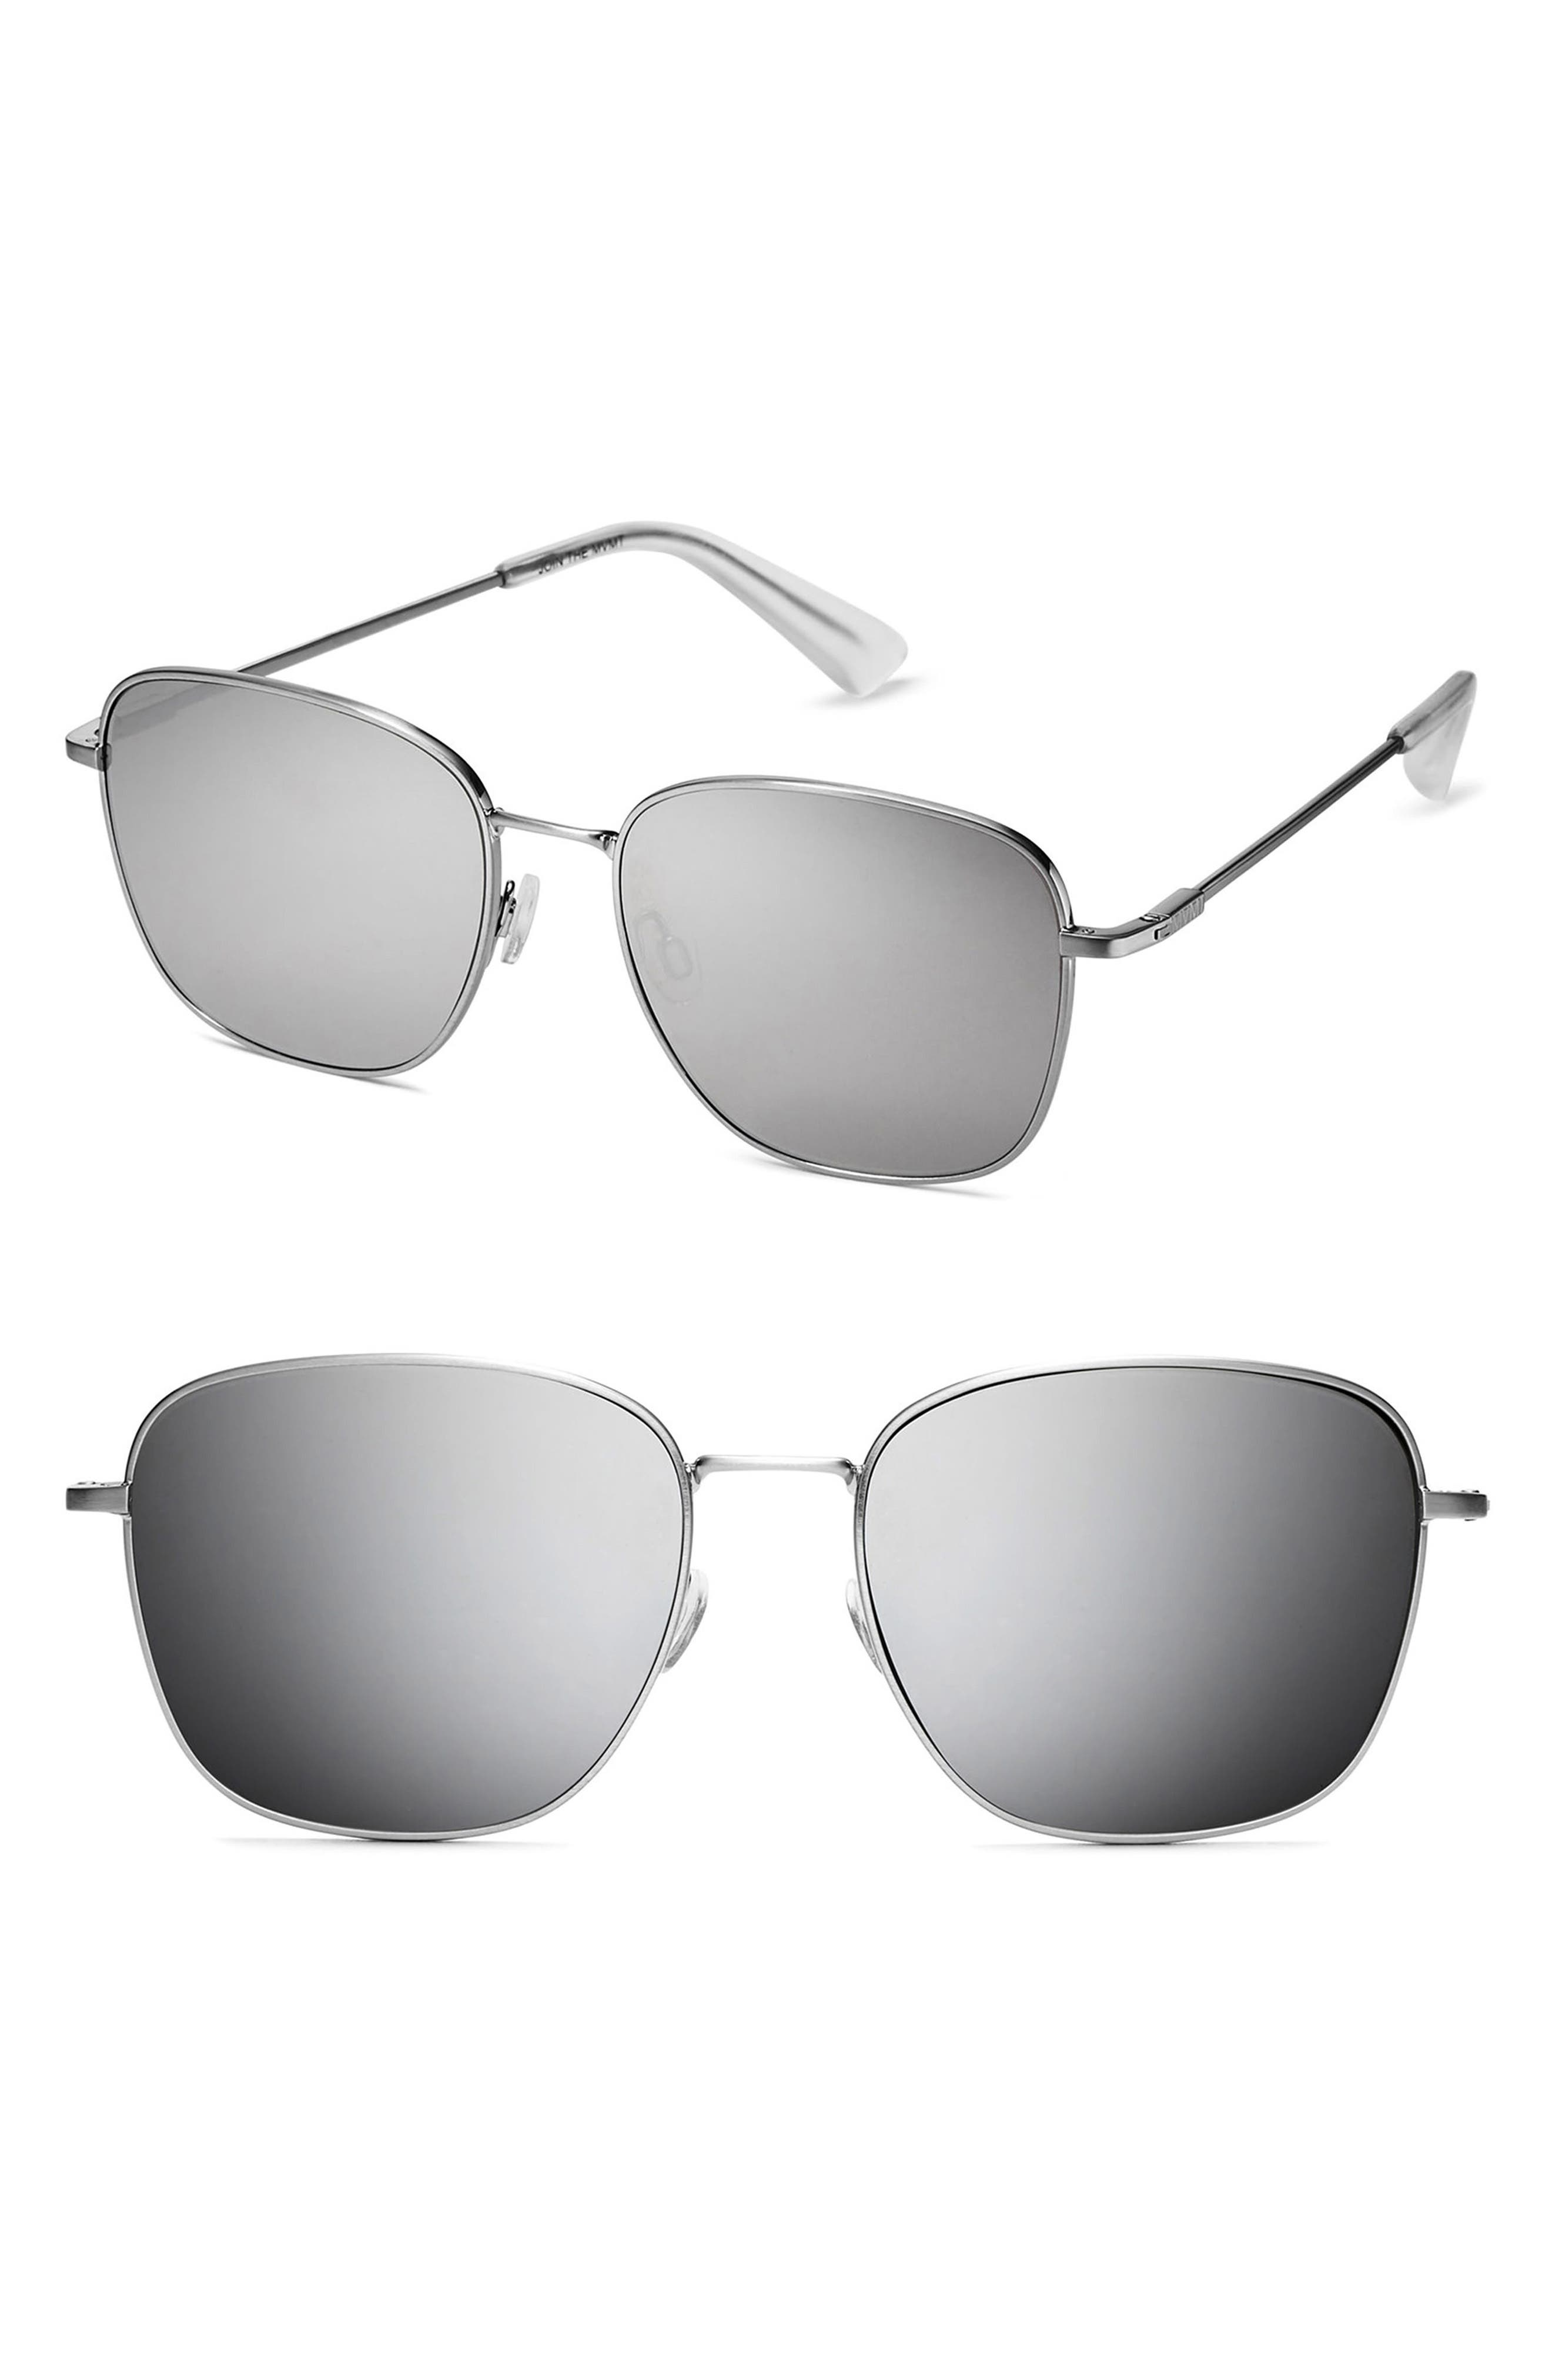 Outlaw 55mm Polarized Sunglasses,                             Main thumbnail 1, color,                             SILVER MIRROR